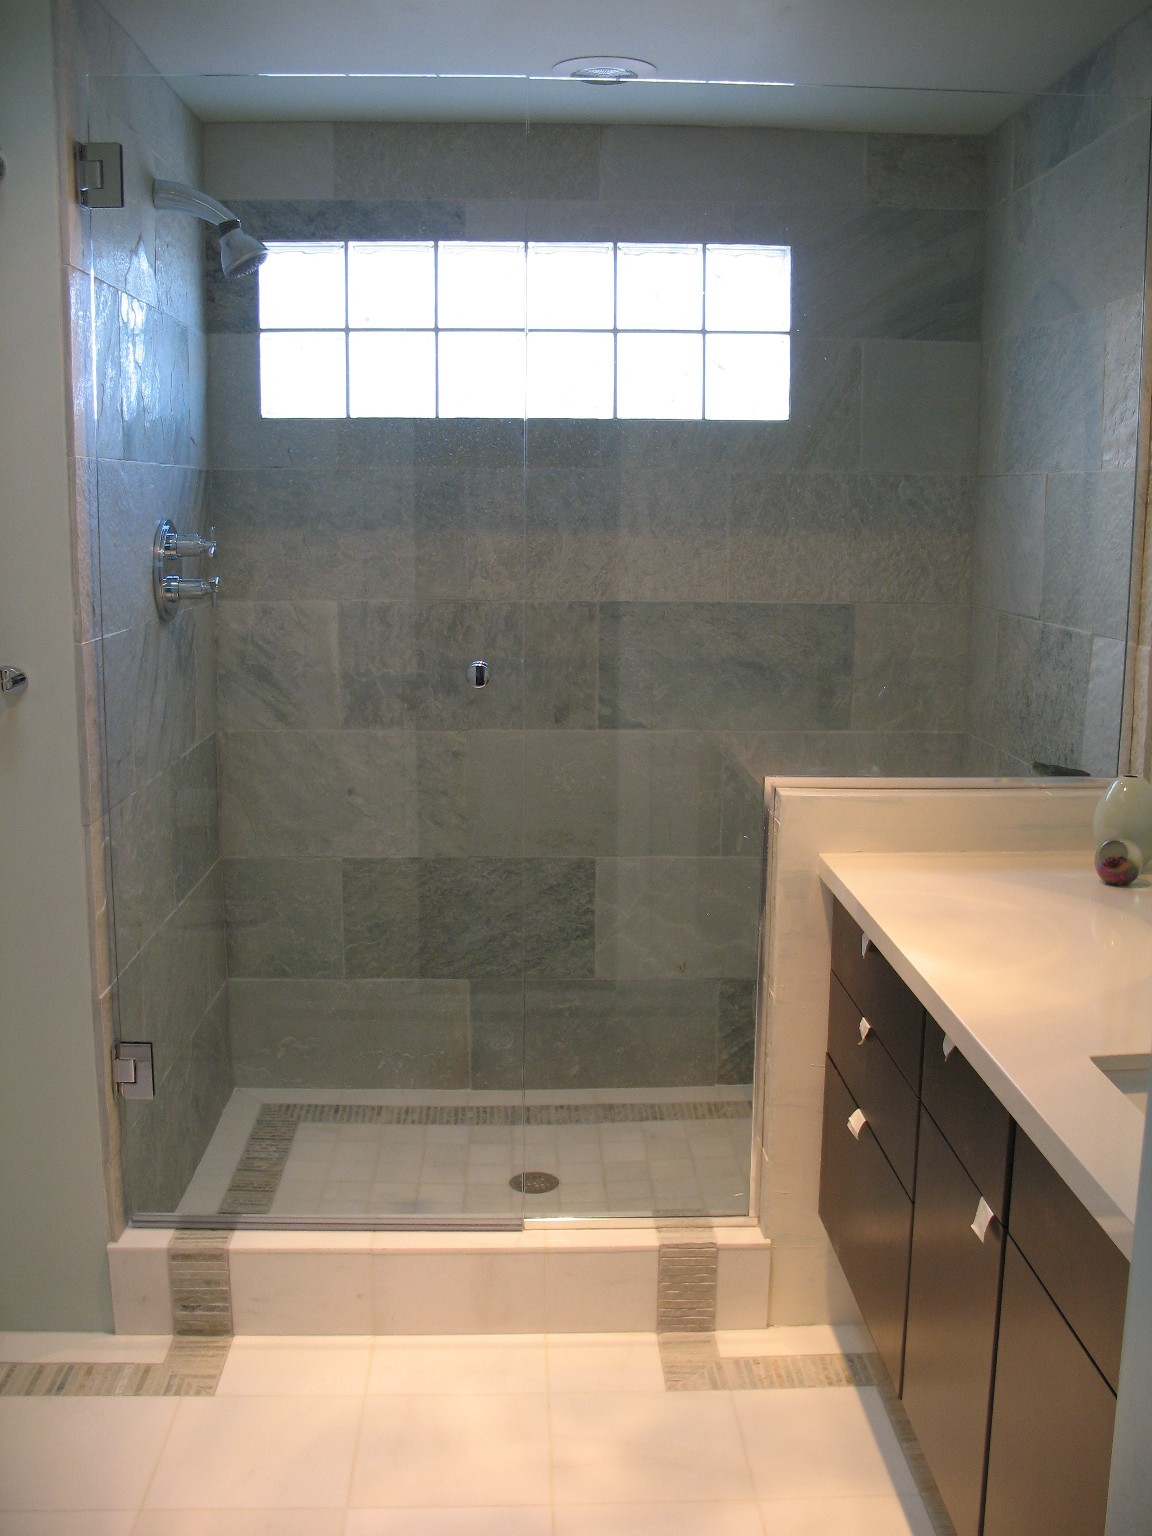 Bathroom Tiled Shower Design Ideas ~ Shower tile ideas on a budget